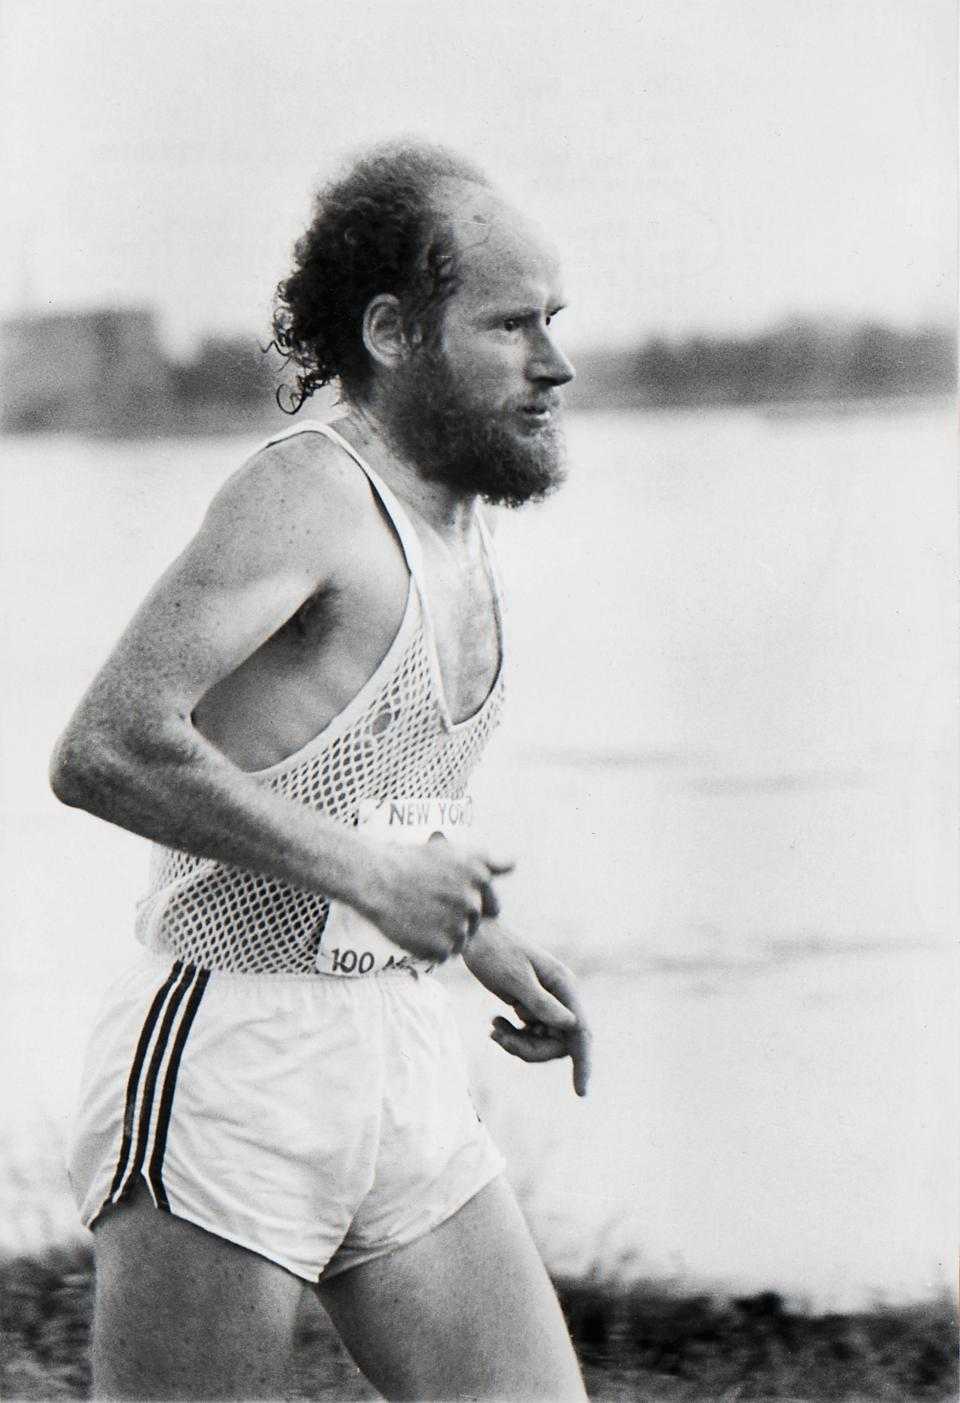 Don Ritchie ran his first marathon at the age of 21